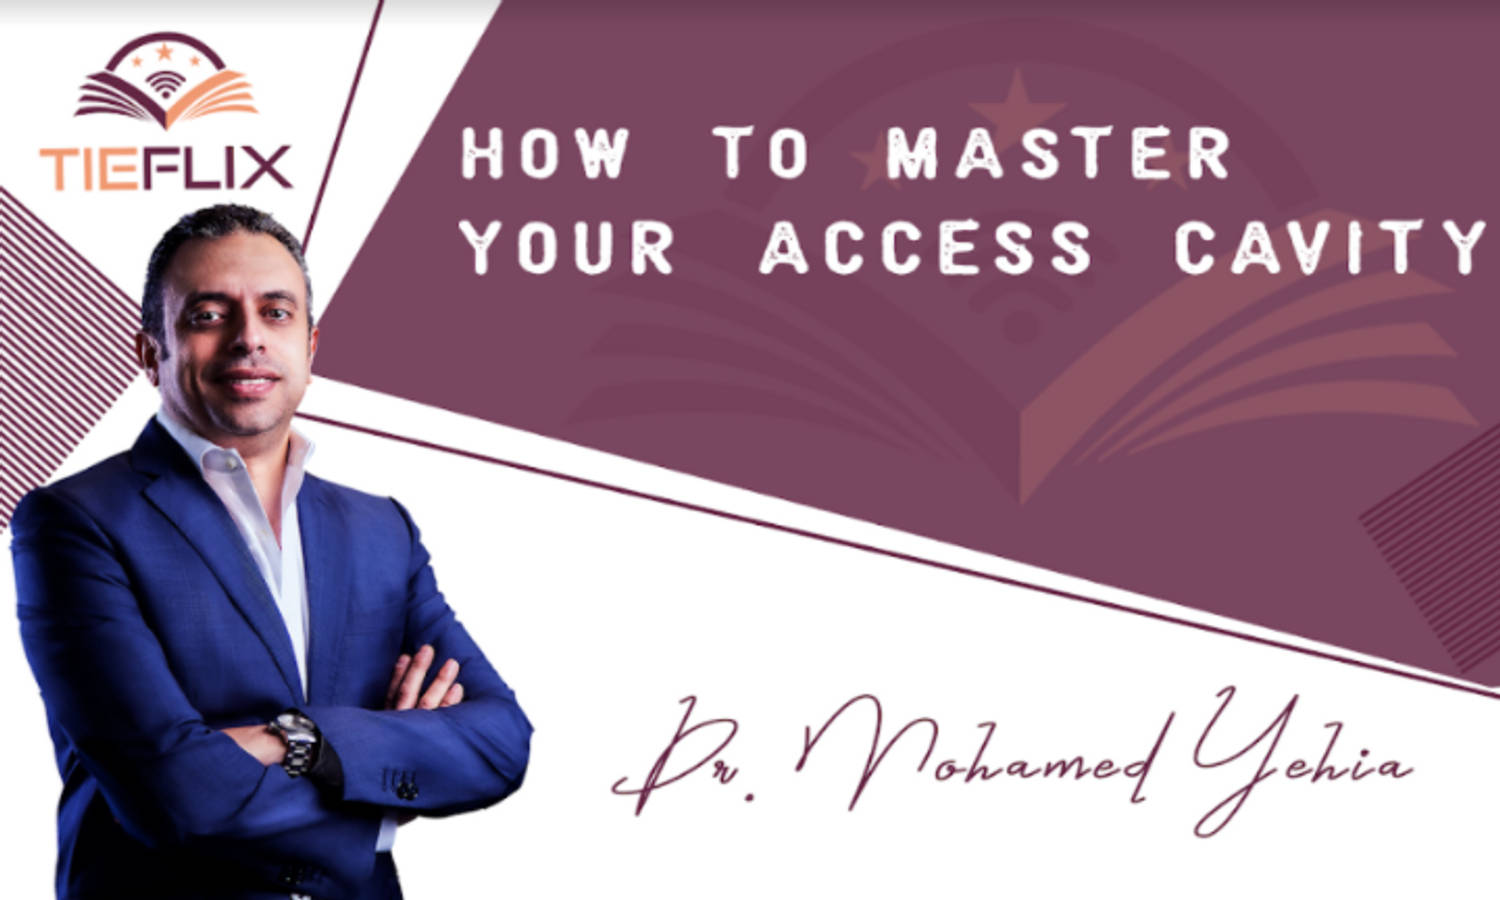 How to Master Your Access Cavity